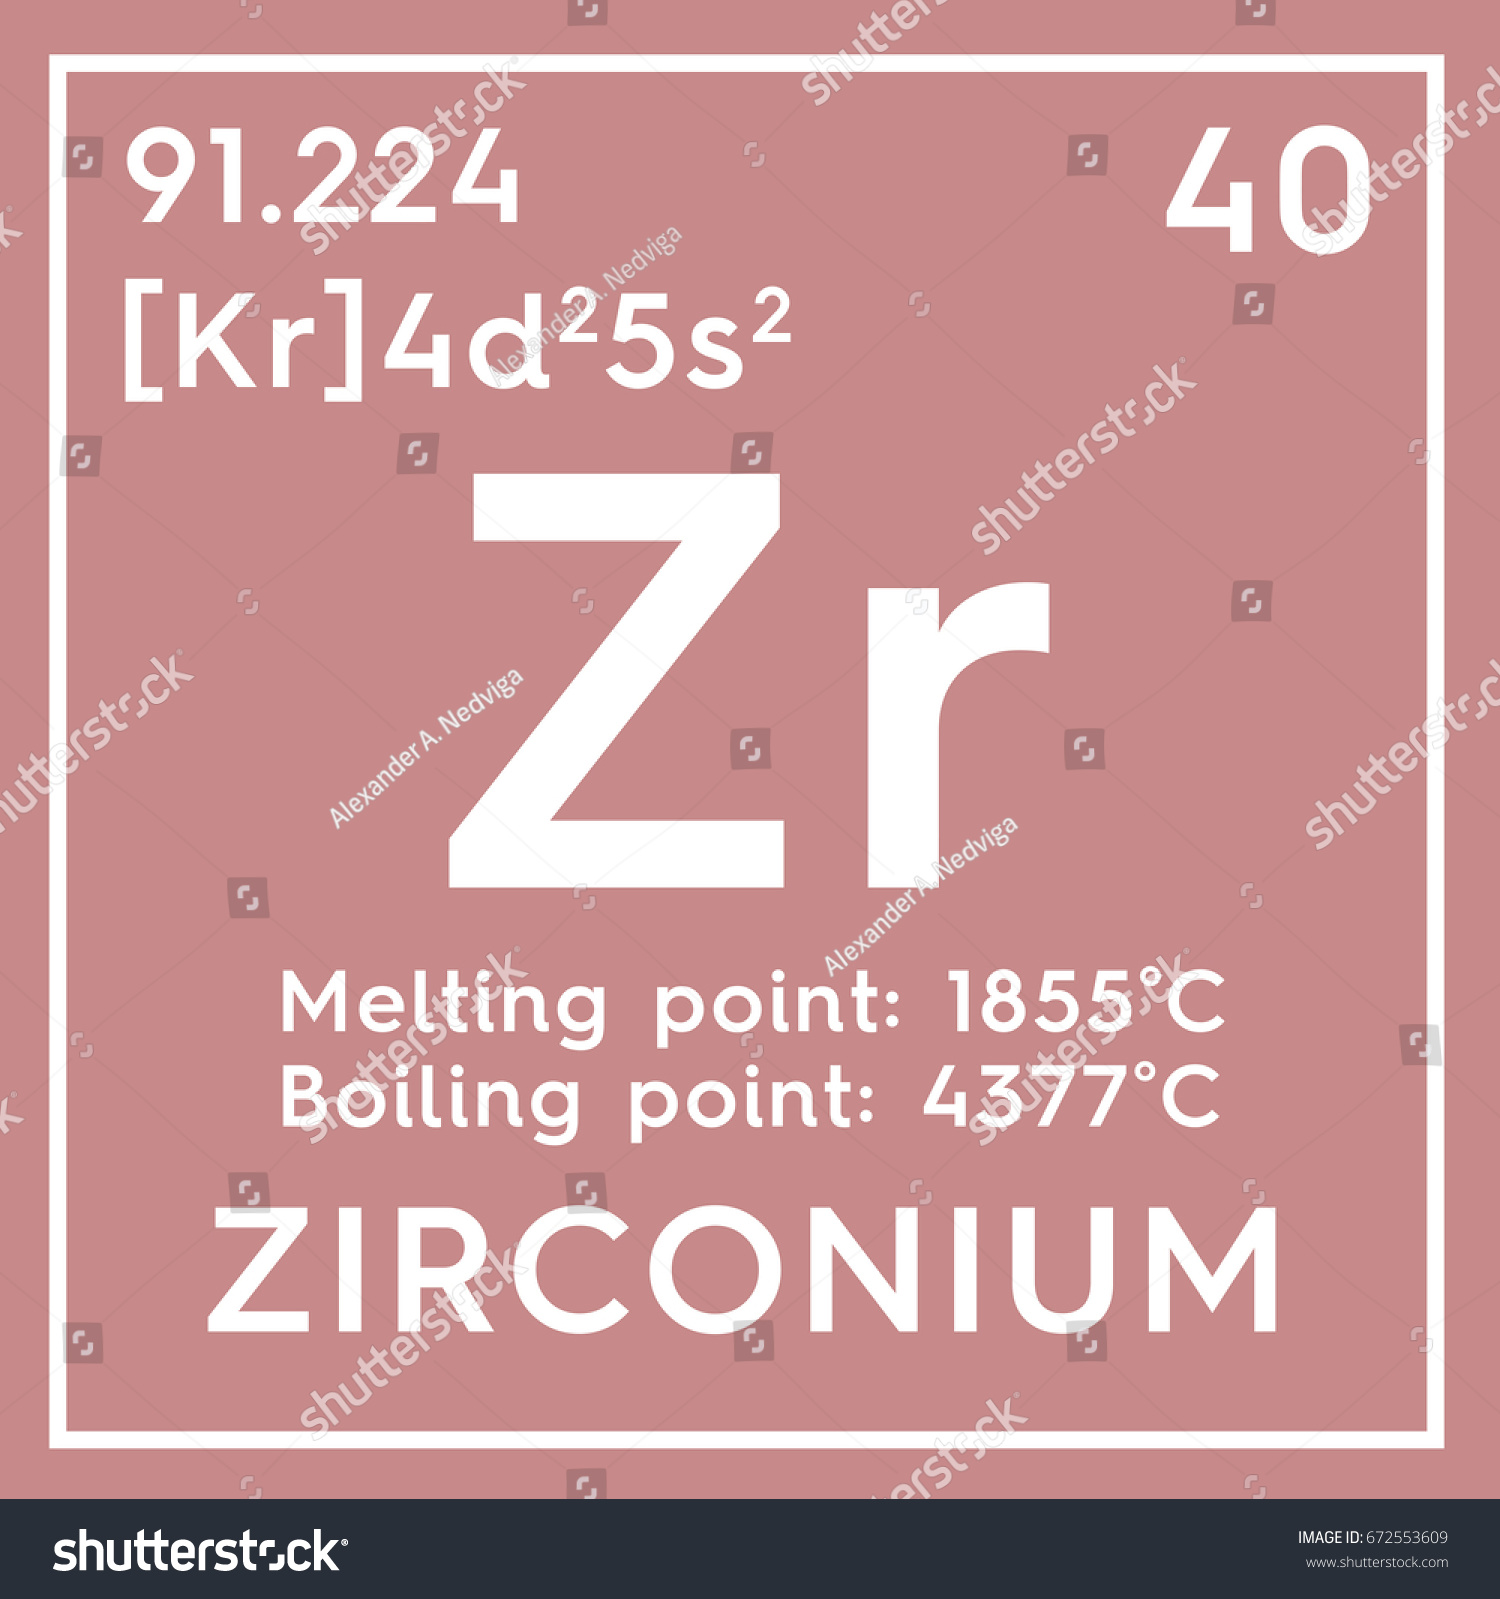 Cobalt in periodic table image collections periodic table images zirconium transition metals chemical element mendeleevs stock chemical element of mendeleevs periodic table zirconium in square gamestrikefo Image collections